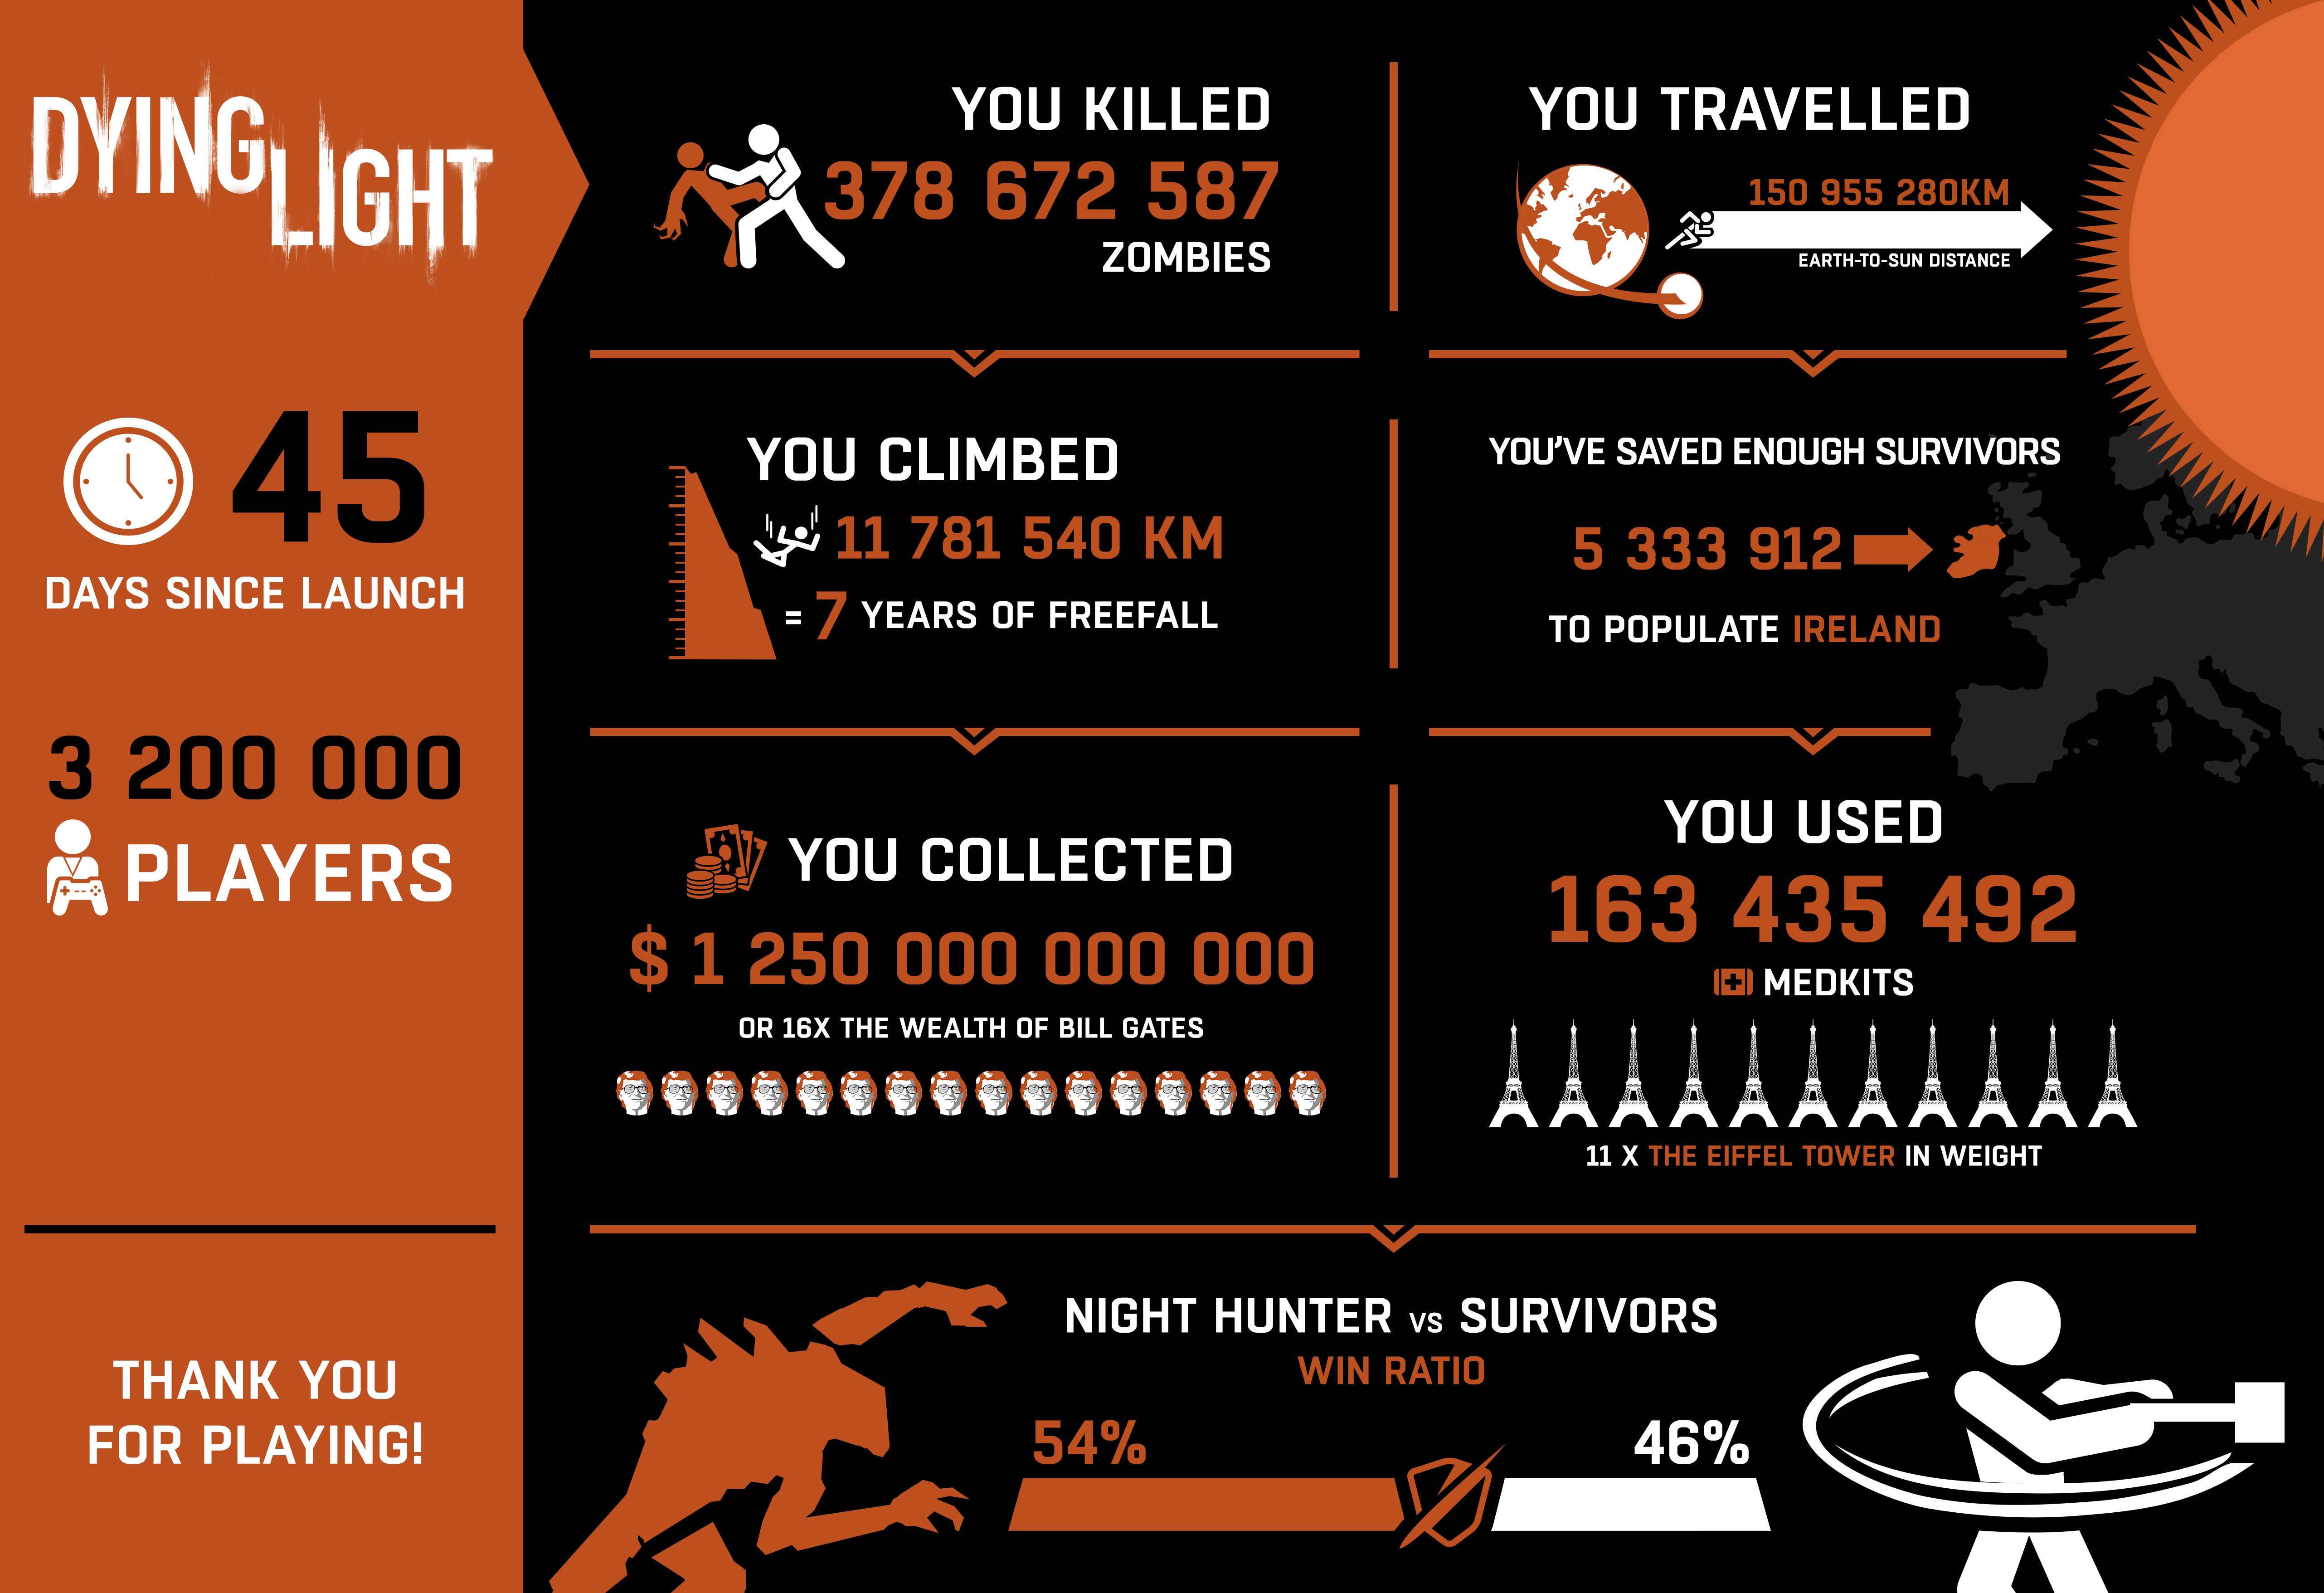 dying-light-infographic-km